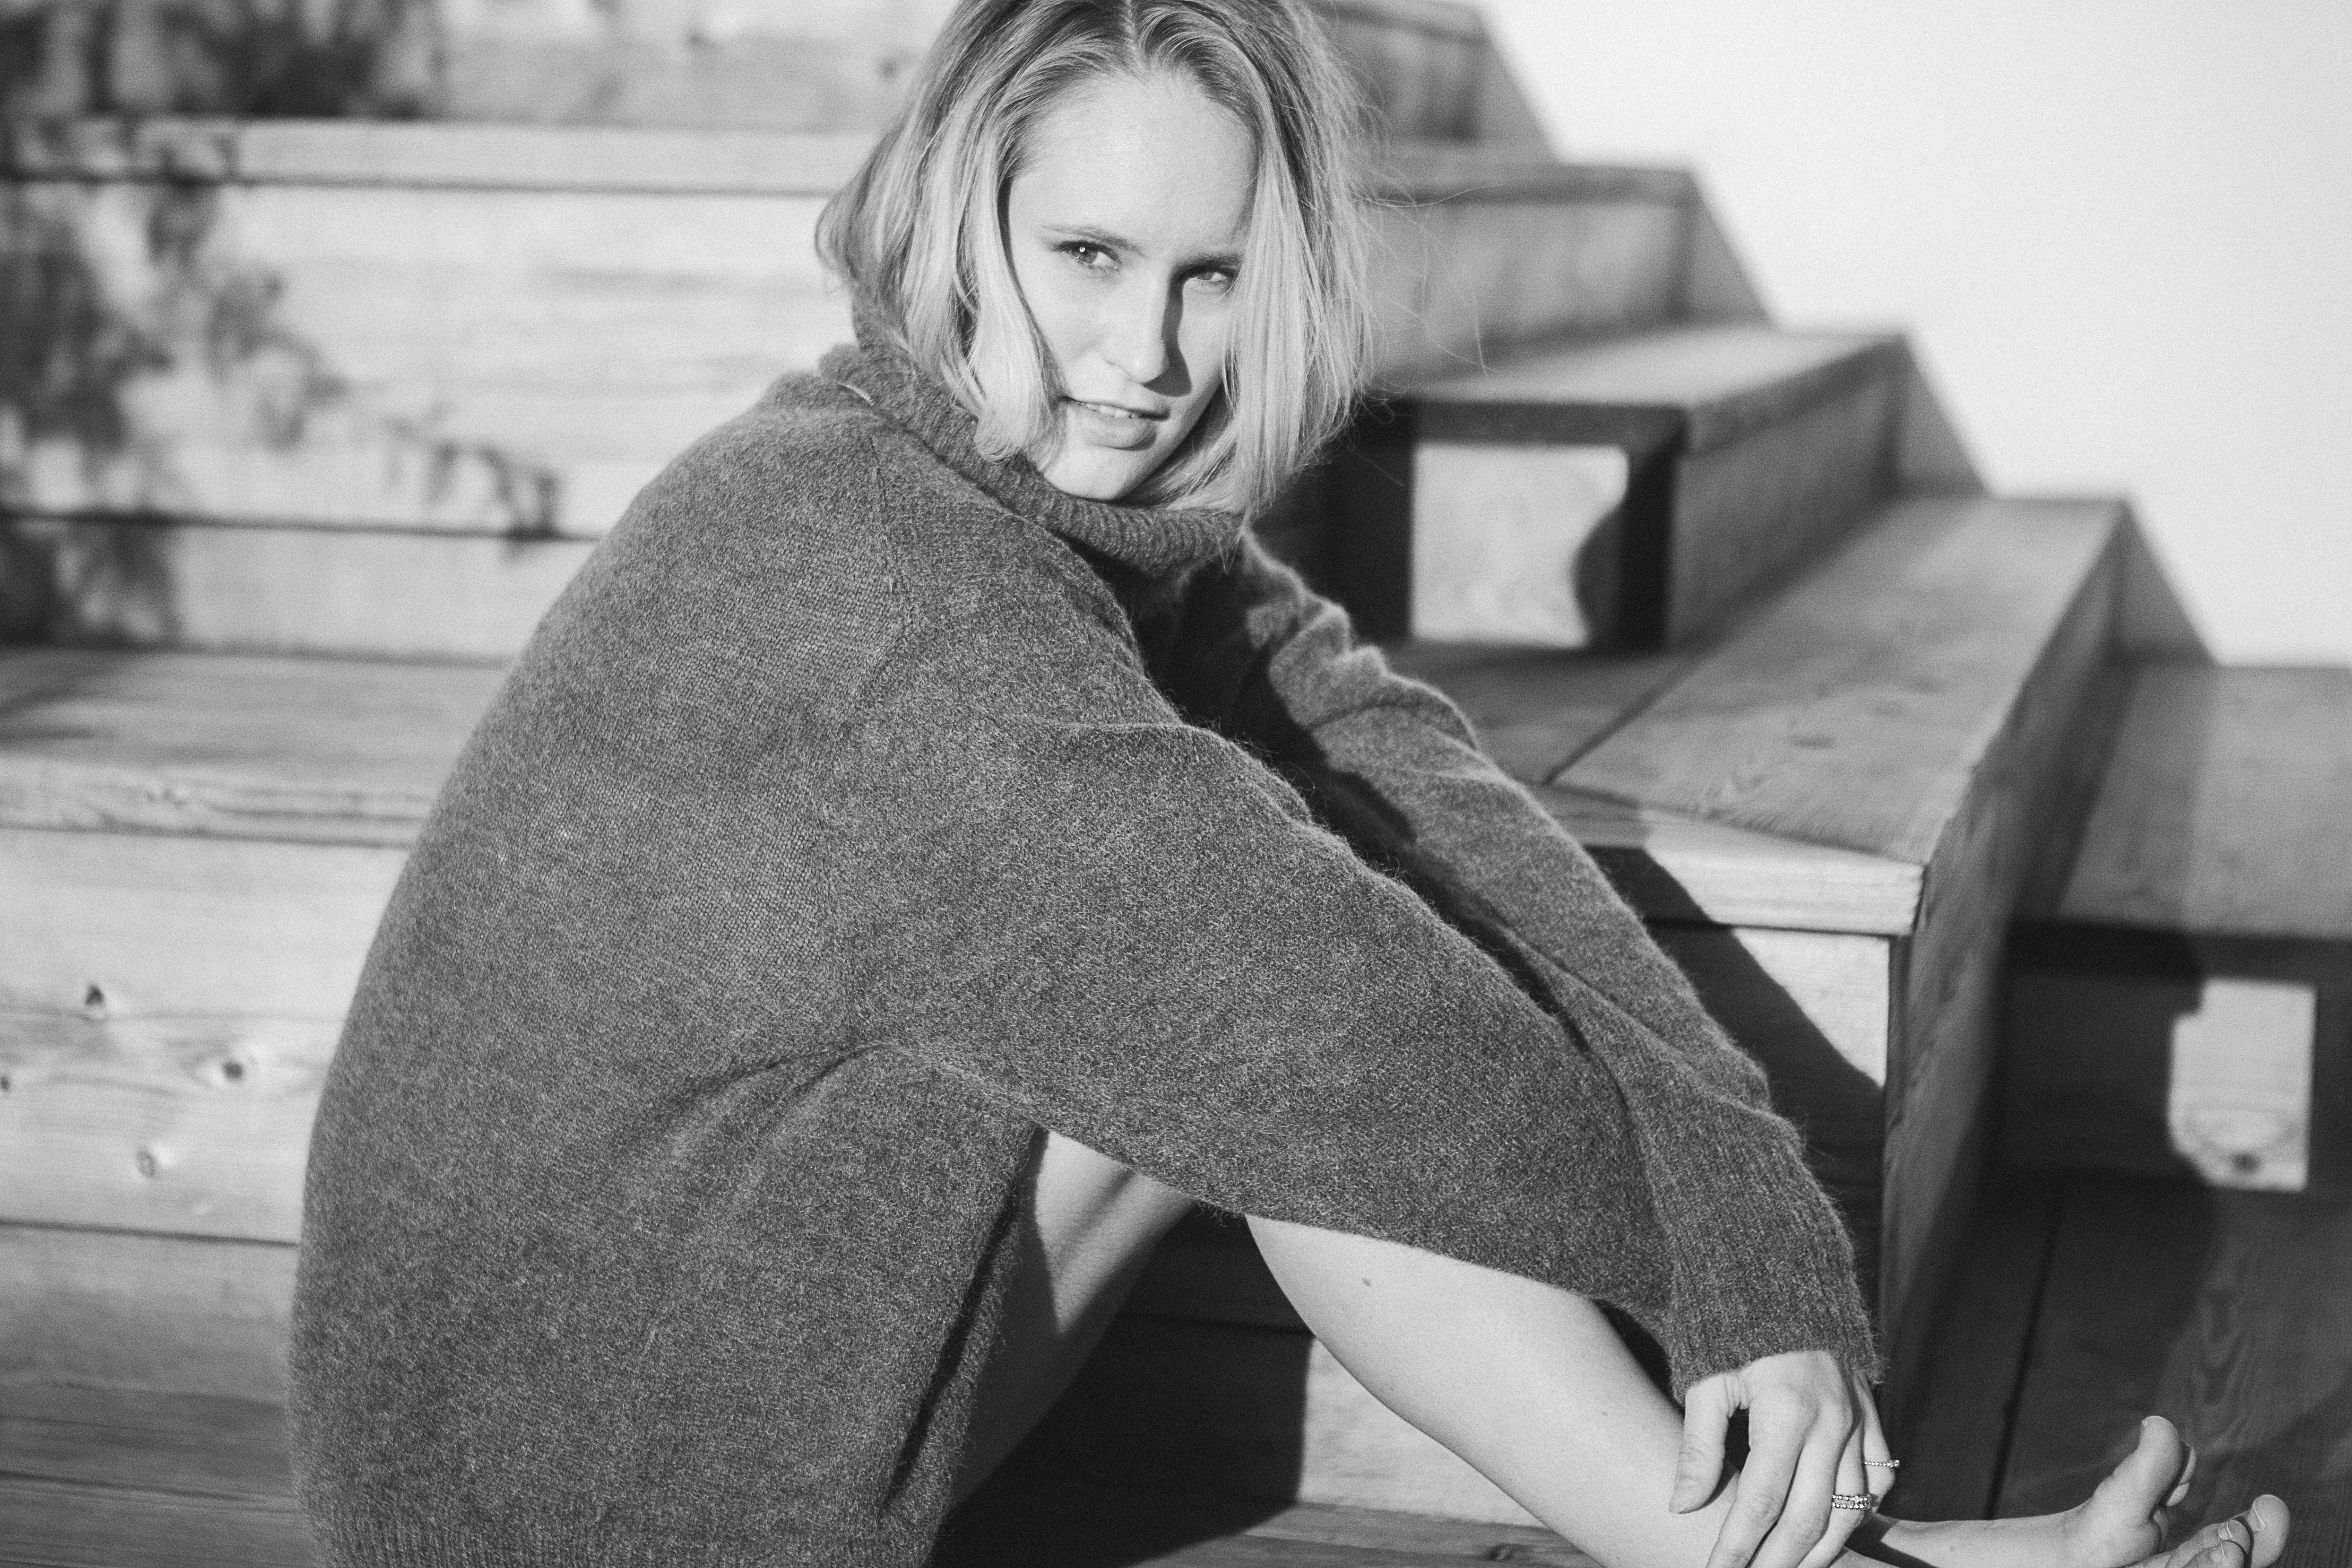 A black-and-white woman in a large sweater sits aside wooden stairs